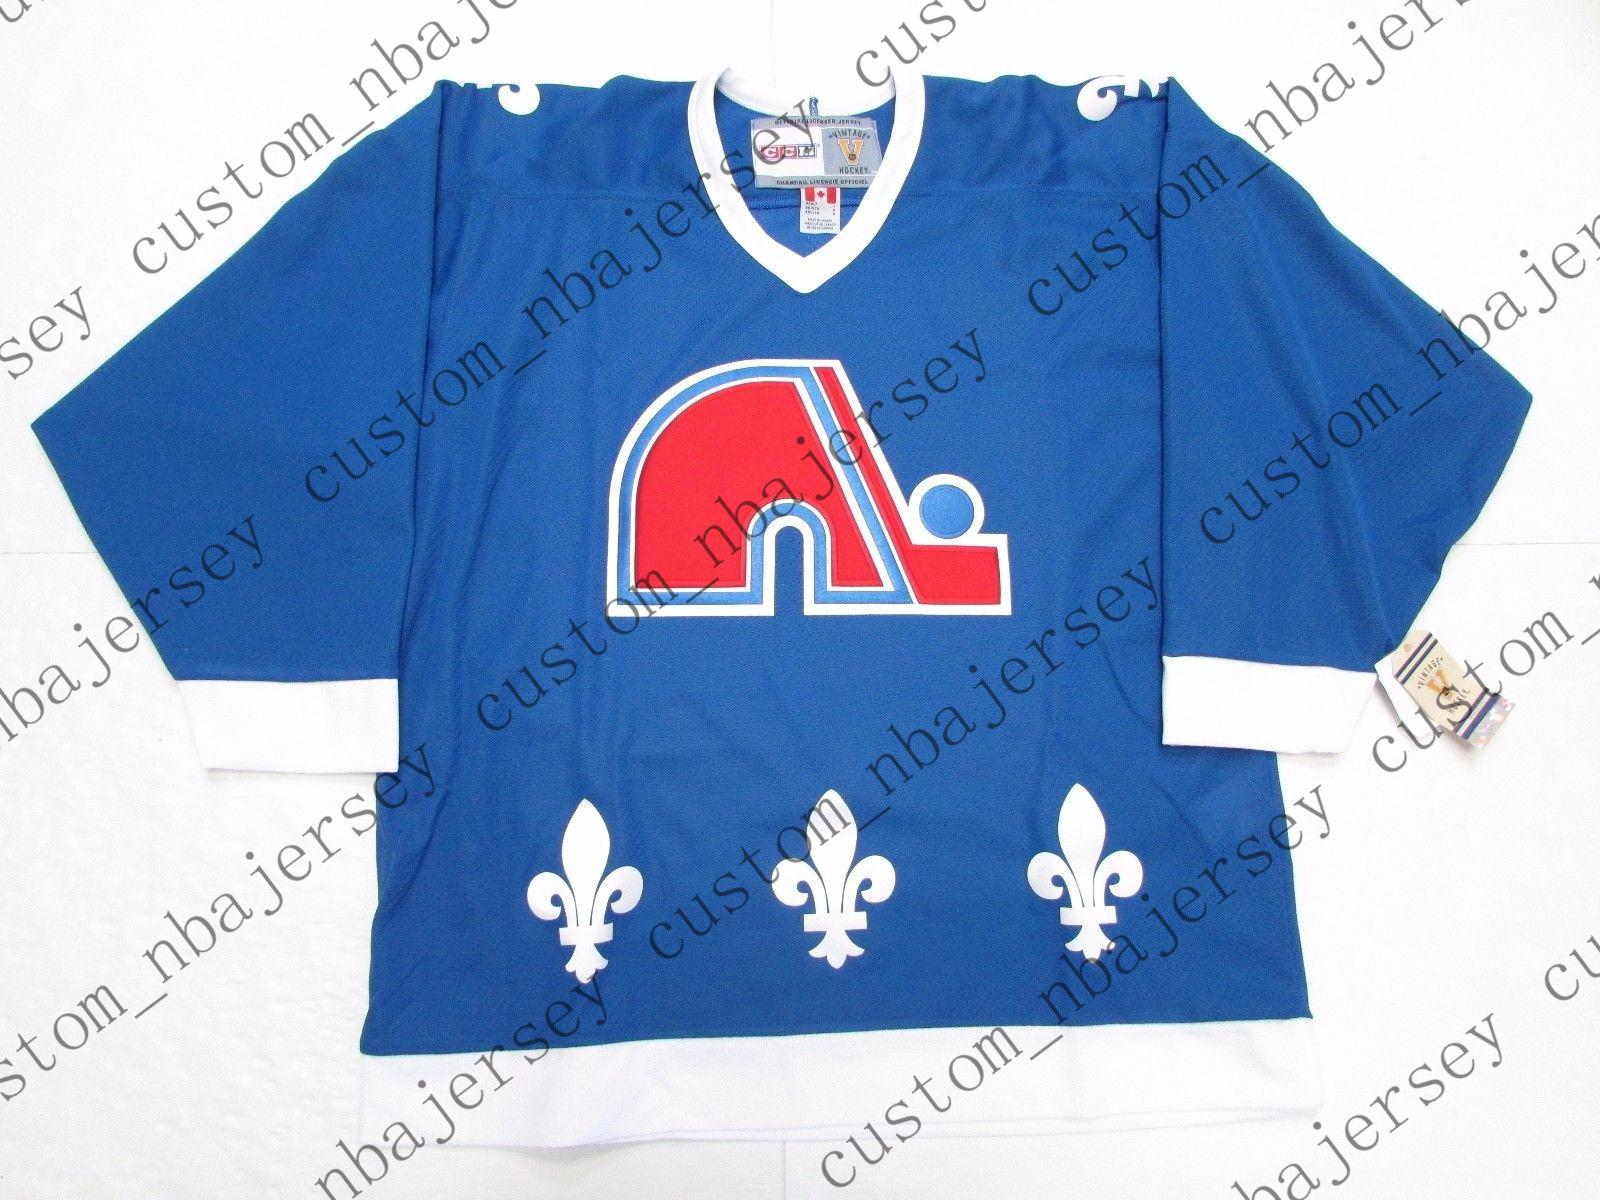 a6d317c35 2019 Cheap Custom QUEBEC NORDIQUES AWAY BLUE VINTAGE CCM HOCKEY JERSEY  Stitch Add Any Number Any Name Mens Hockey Jersey XS 5XL From  Custom nbajersey